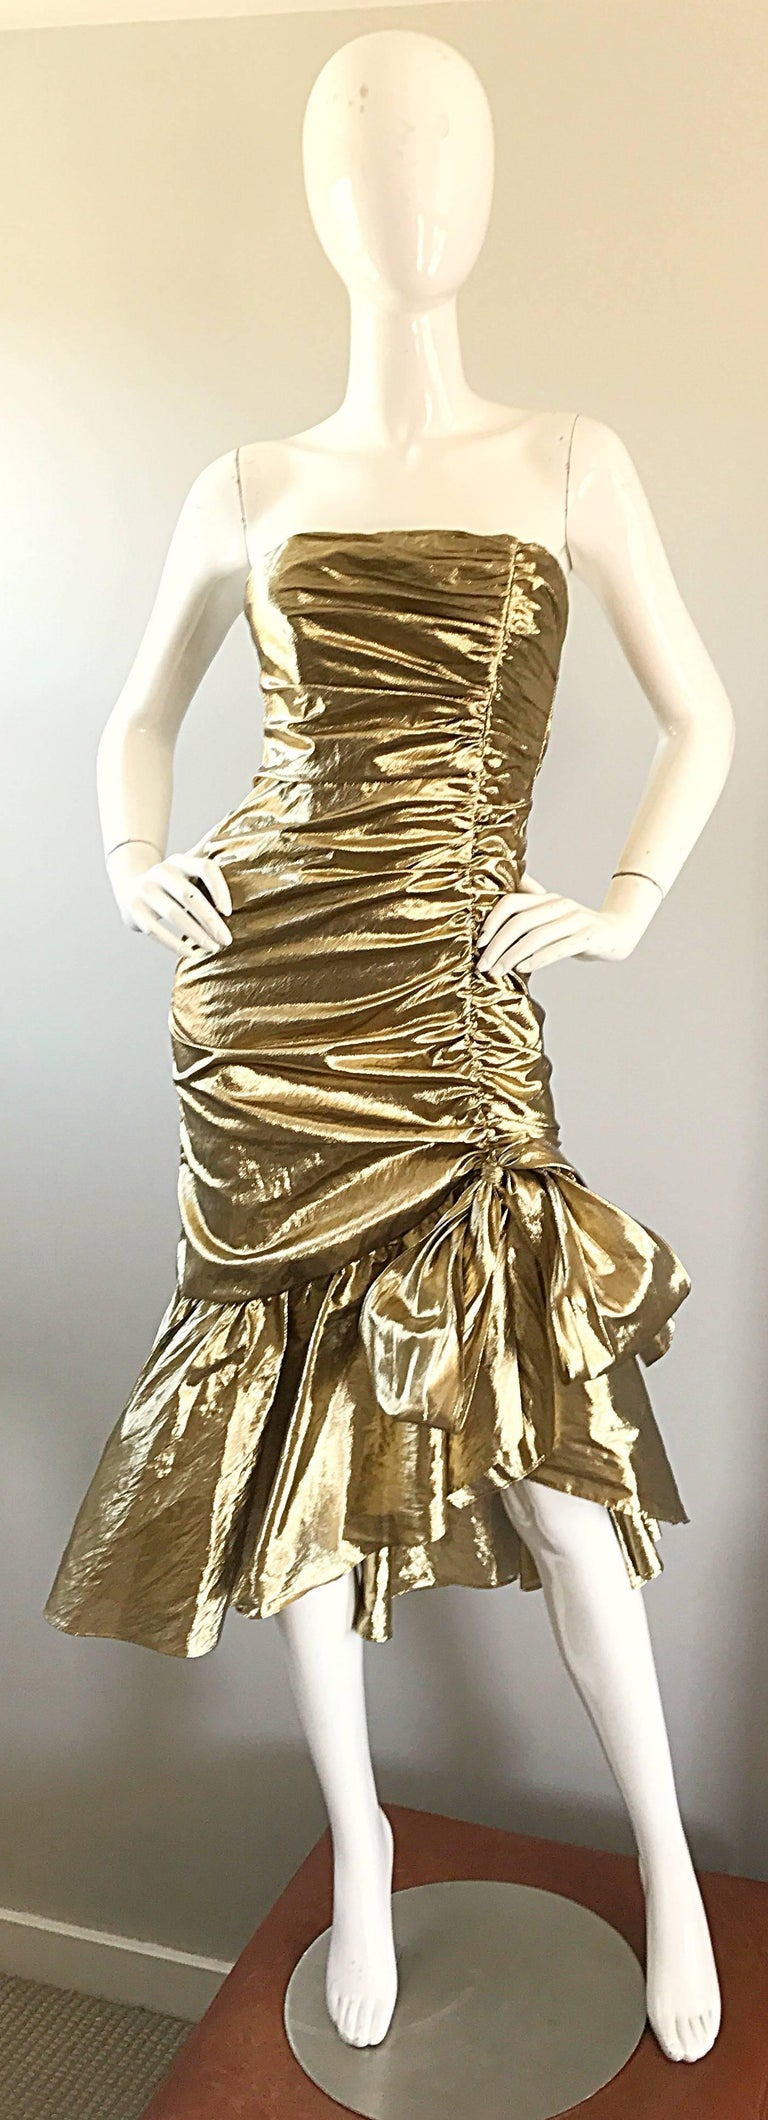 Amazing 1980s gold lame strapless Avant Garde cocktail dress! Features flattering ruched body, with an asymmetrical flared mermaid hem. Two panels tie to form a bow at the left hem. Hidden zipper up the back. Great belted or alone with heels or